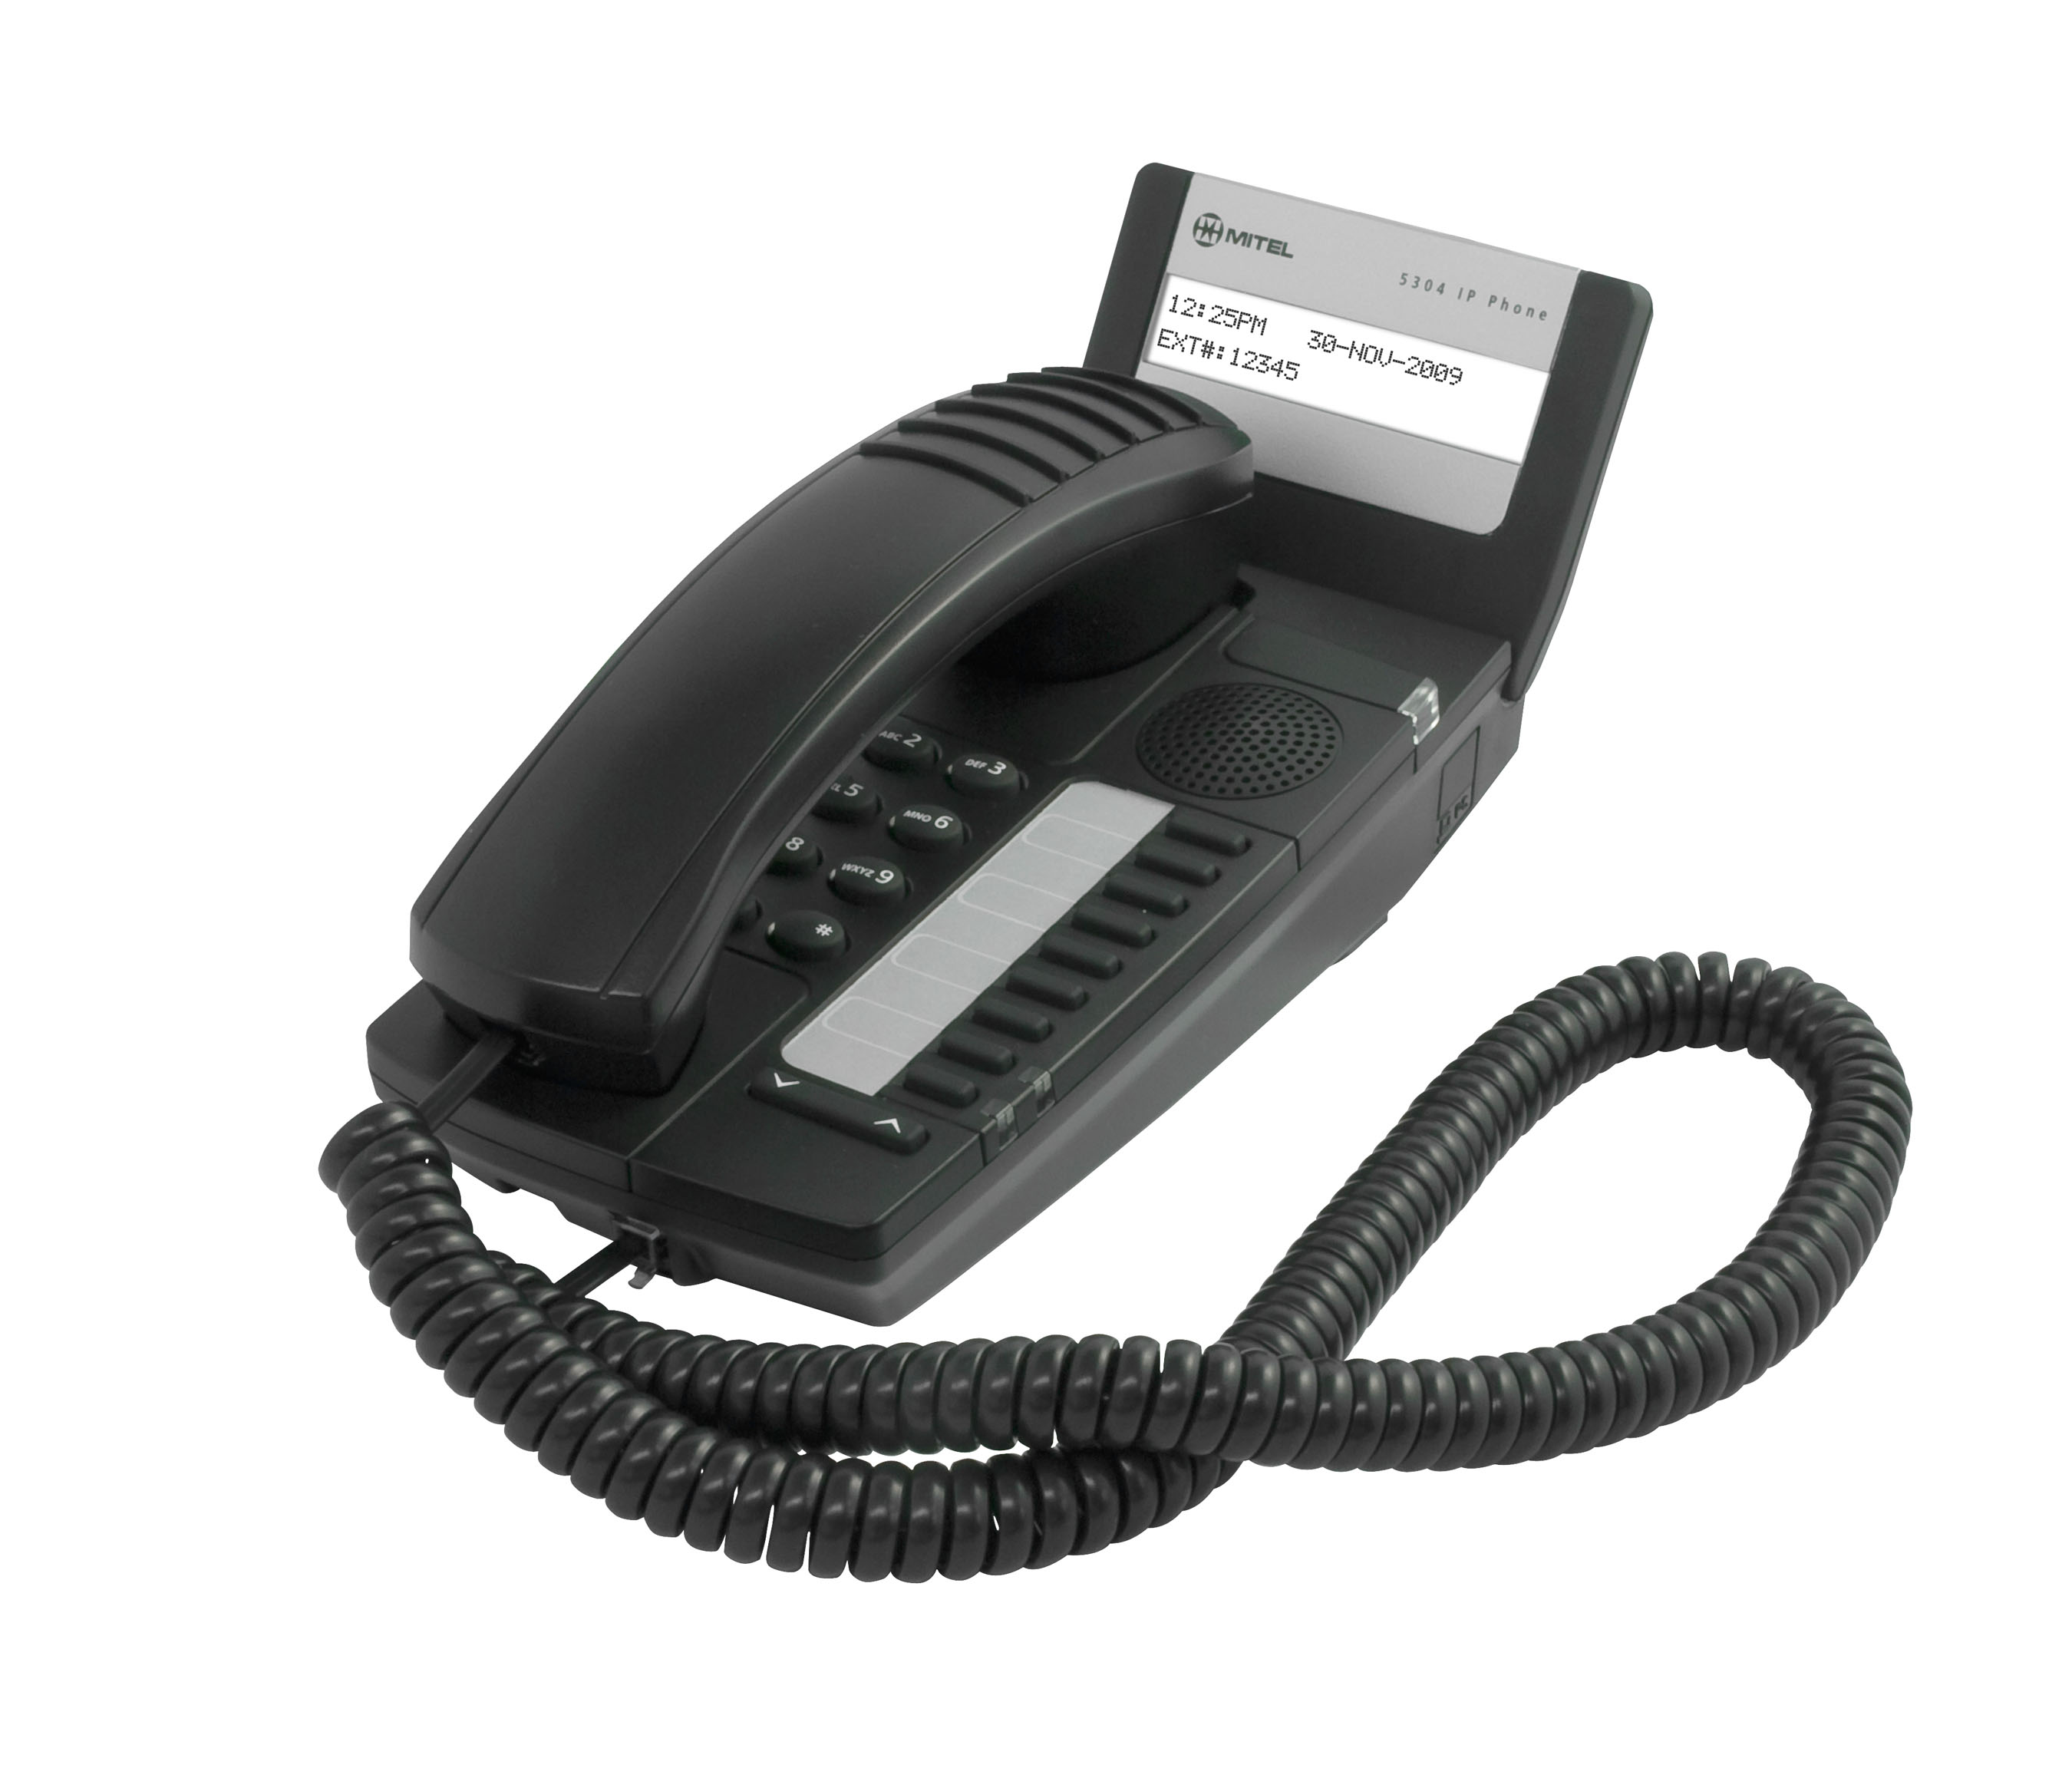 Mitel Model 5304 Utility, Convenience and Courtesy IP Telephone